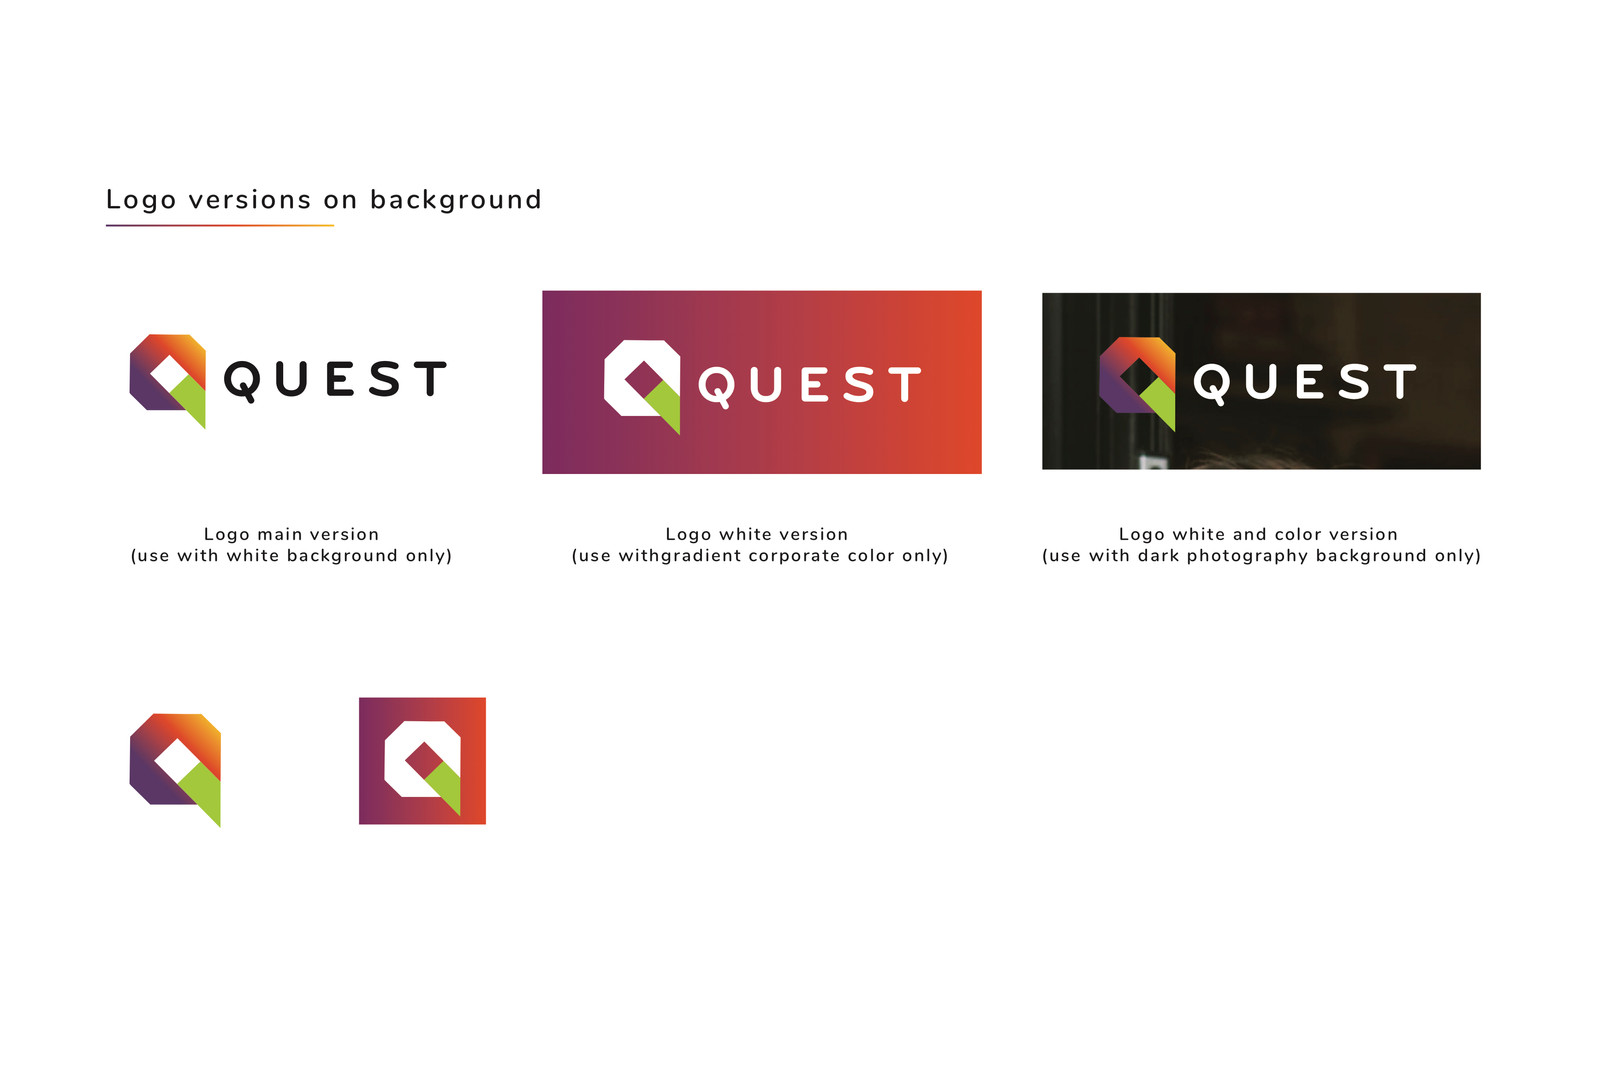 Quest Brand guideline3.jpg